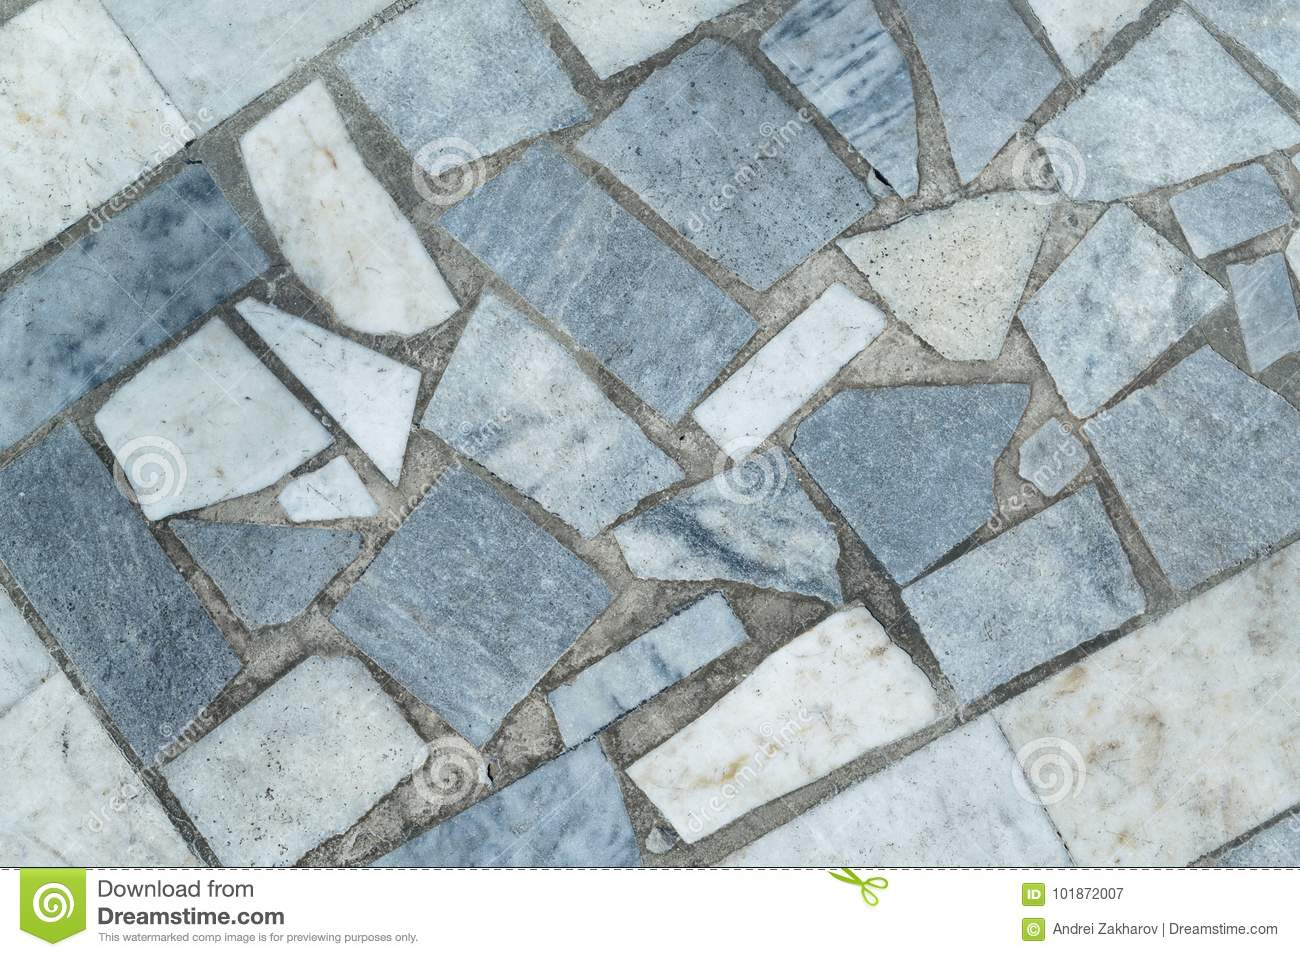 Marble Tiles Of Different Shapes Laid Out On A Flat Surface. Stock ...